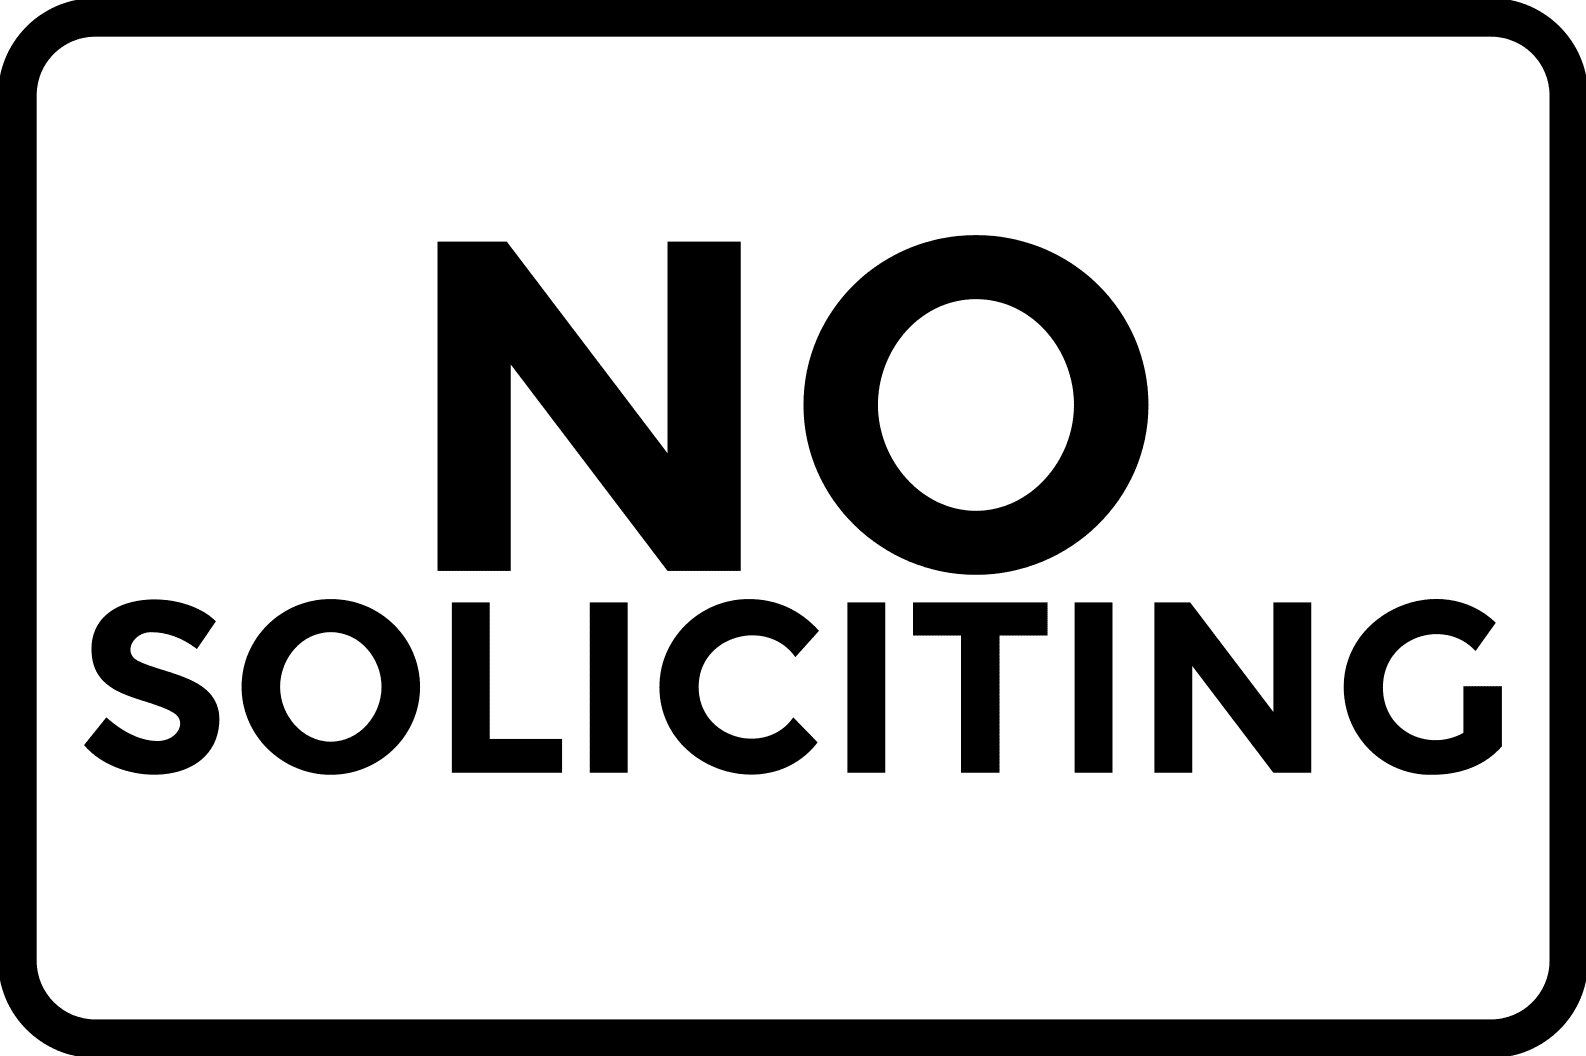 no soliciting simple